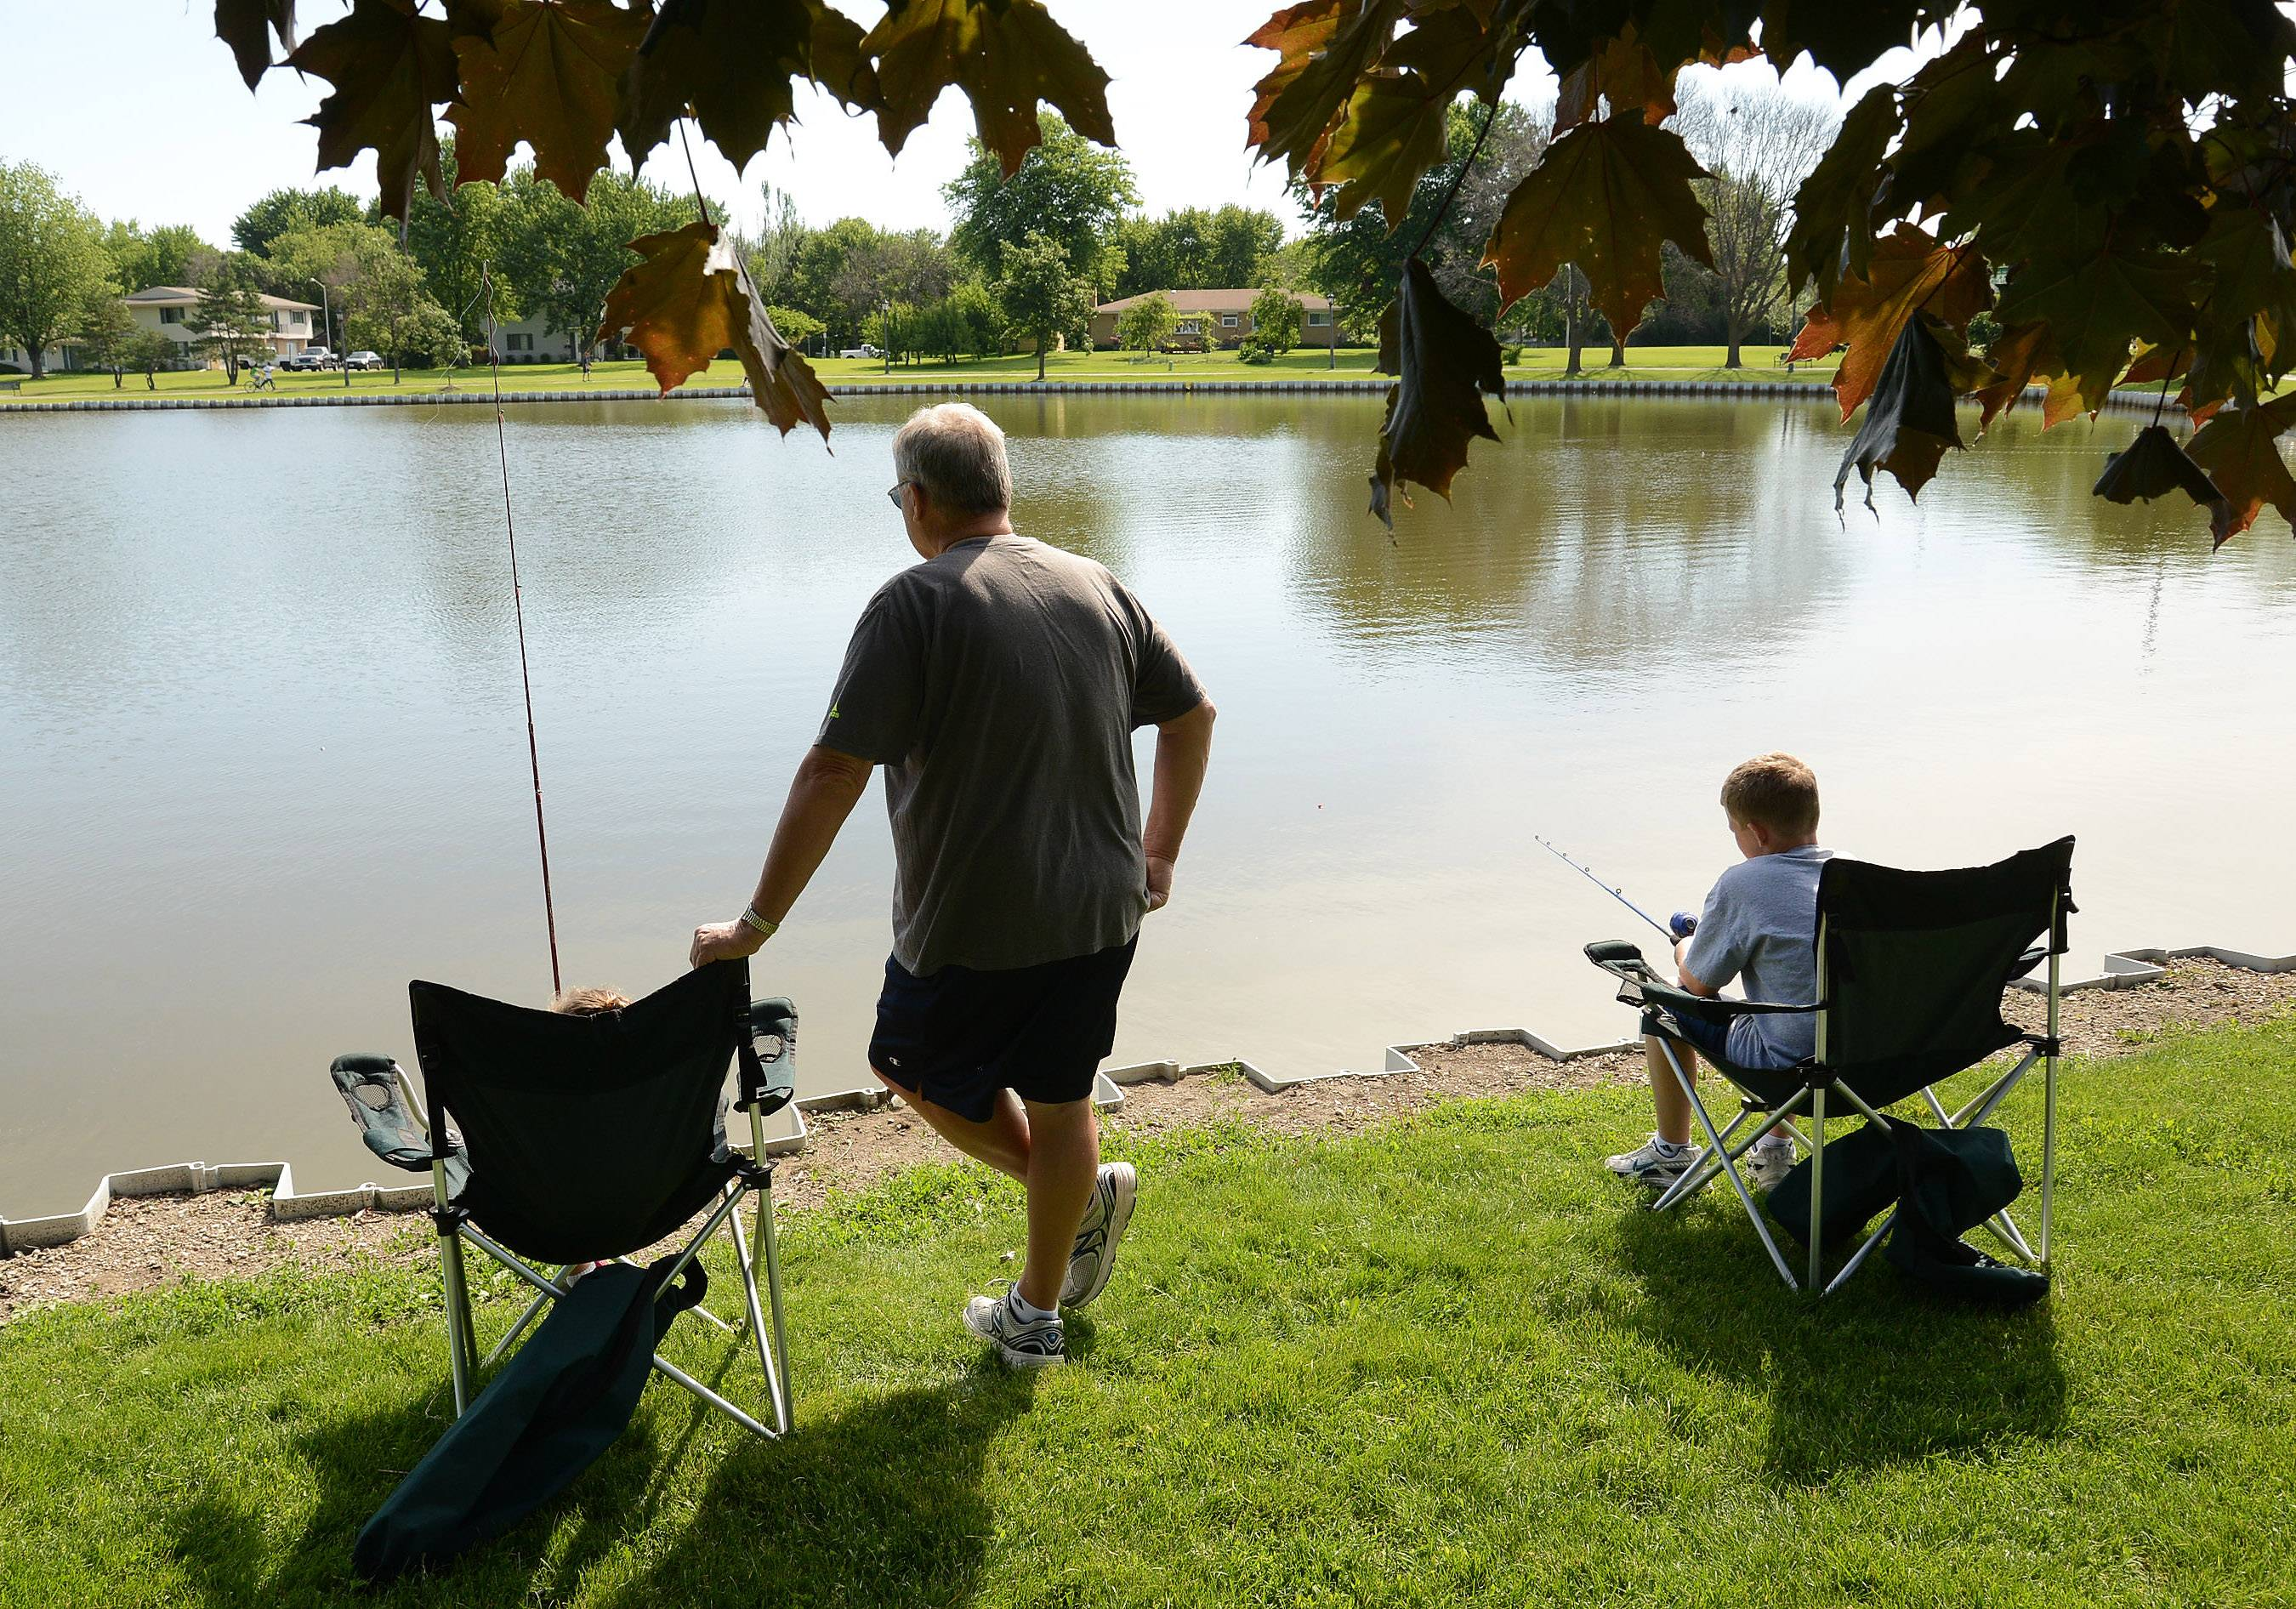 Brian Mores fishes with his grandchildren Kate Mores, left, and Hayden Mores, right, during Schaumburg Father's Day Weekend Fishing Derby at Volkening Lake.